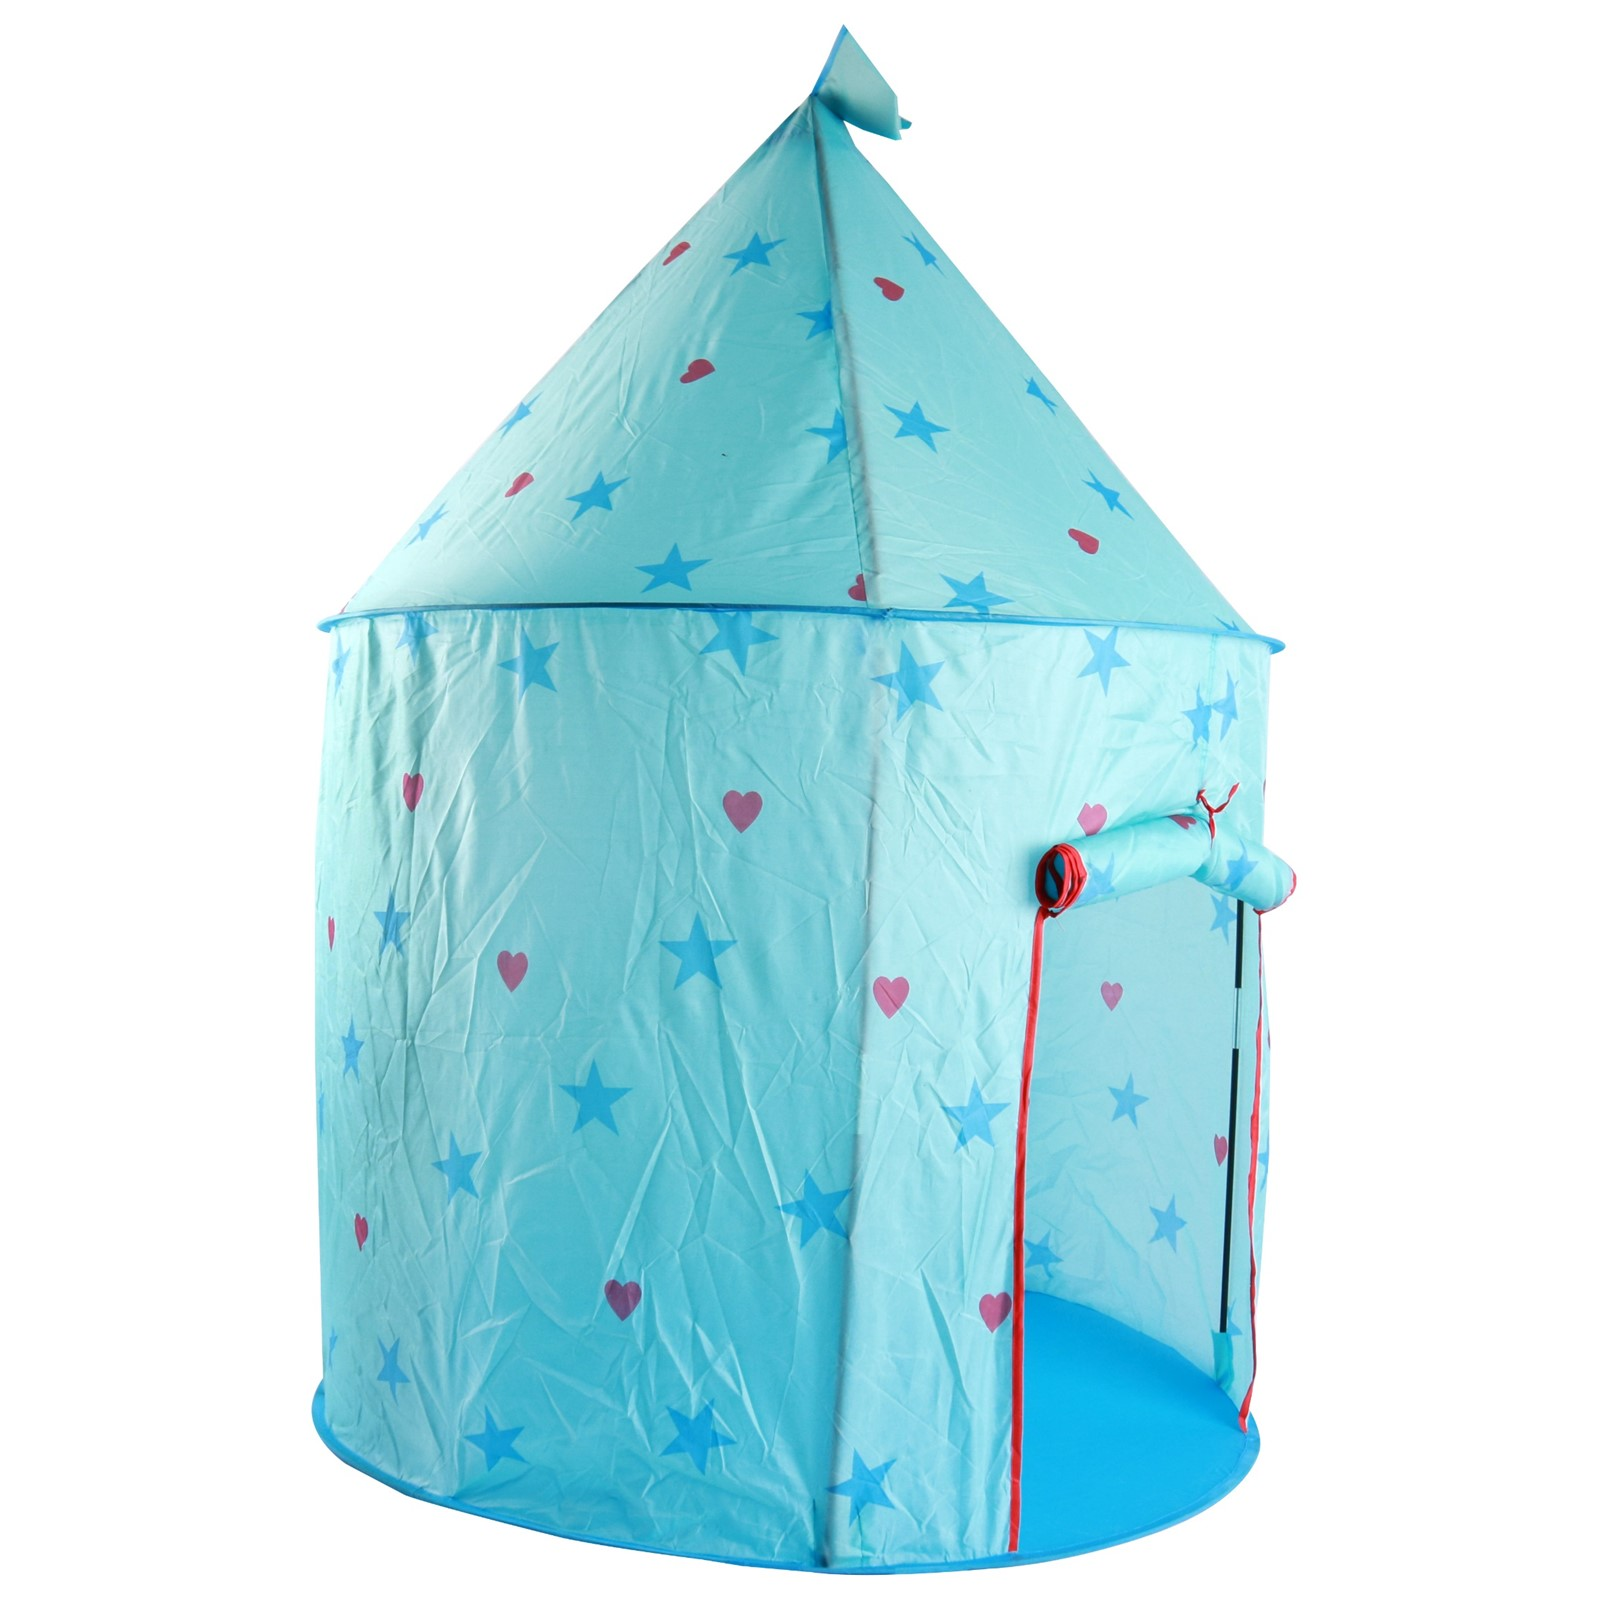 Vokodo Princess Castle Magical Play Tent with Stars Easy Folding Kids Blue Playhouse Boosts Imagination and Creativity Indoor Outdoor Adventure Toy House for Children Boys Girls Toddlers